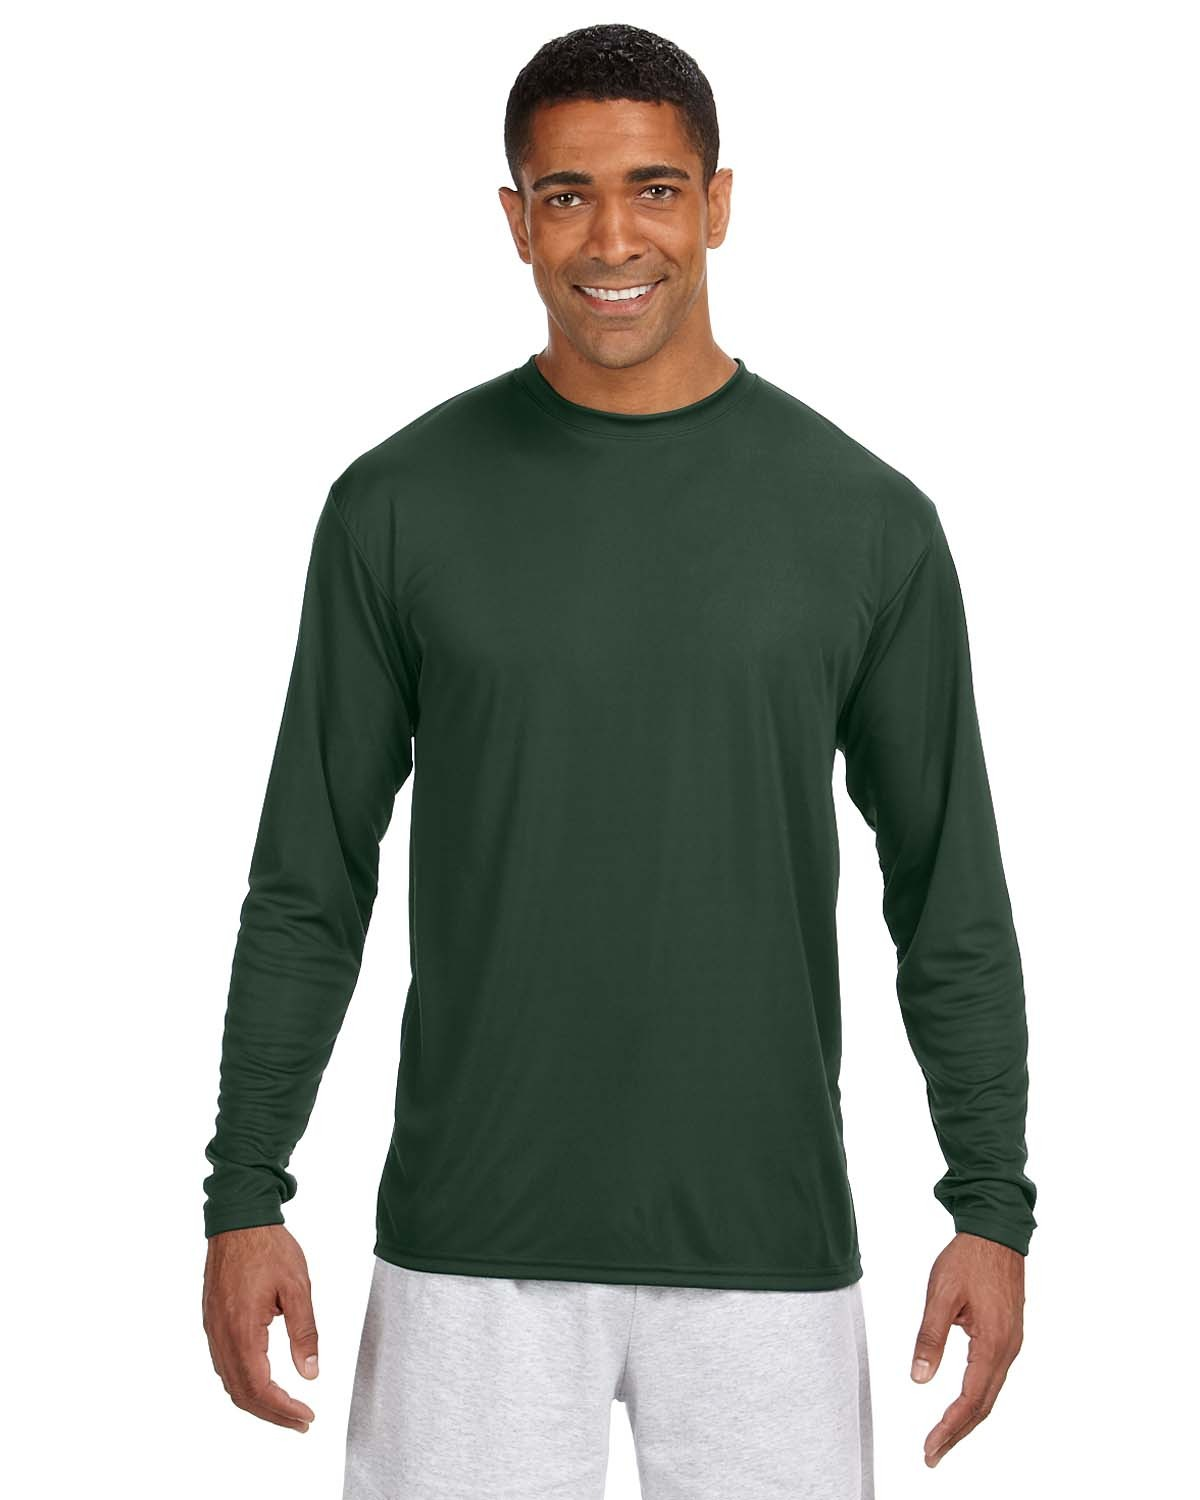 N3165 A4 FOREST GREEN